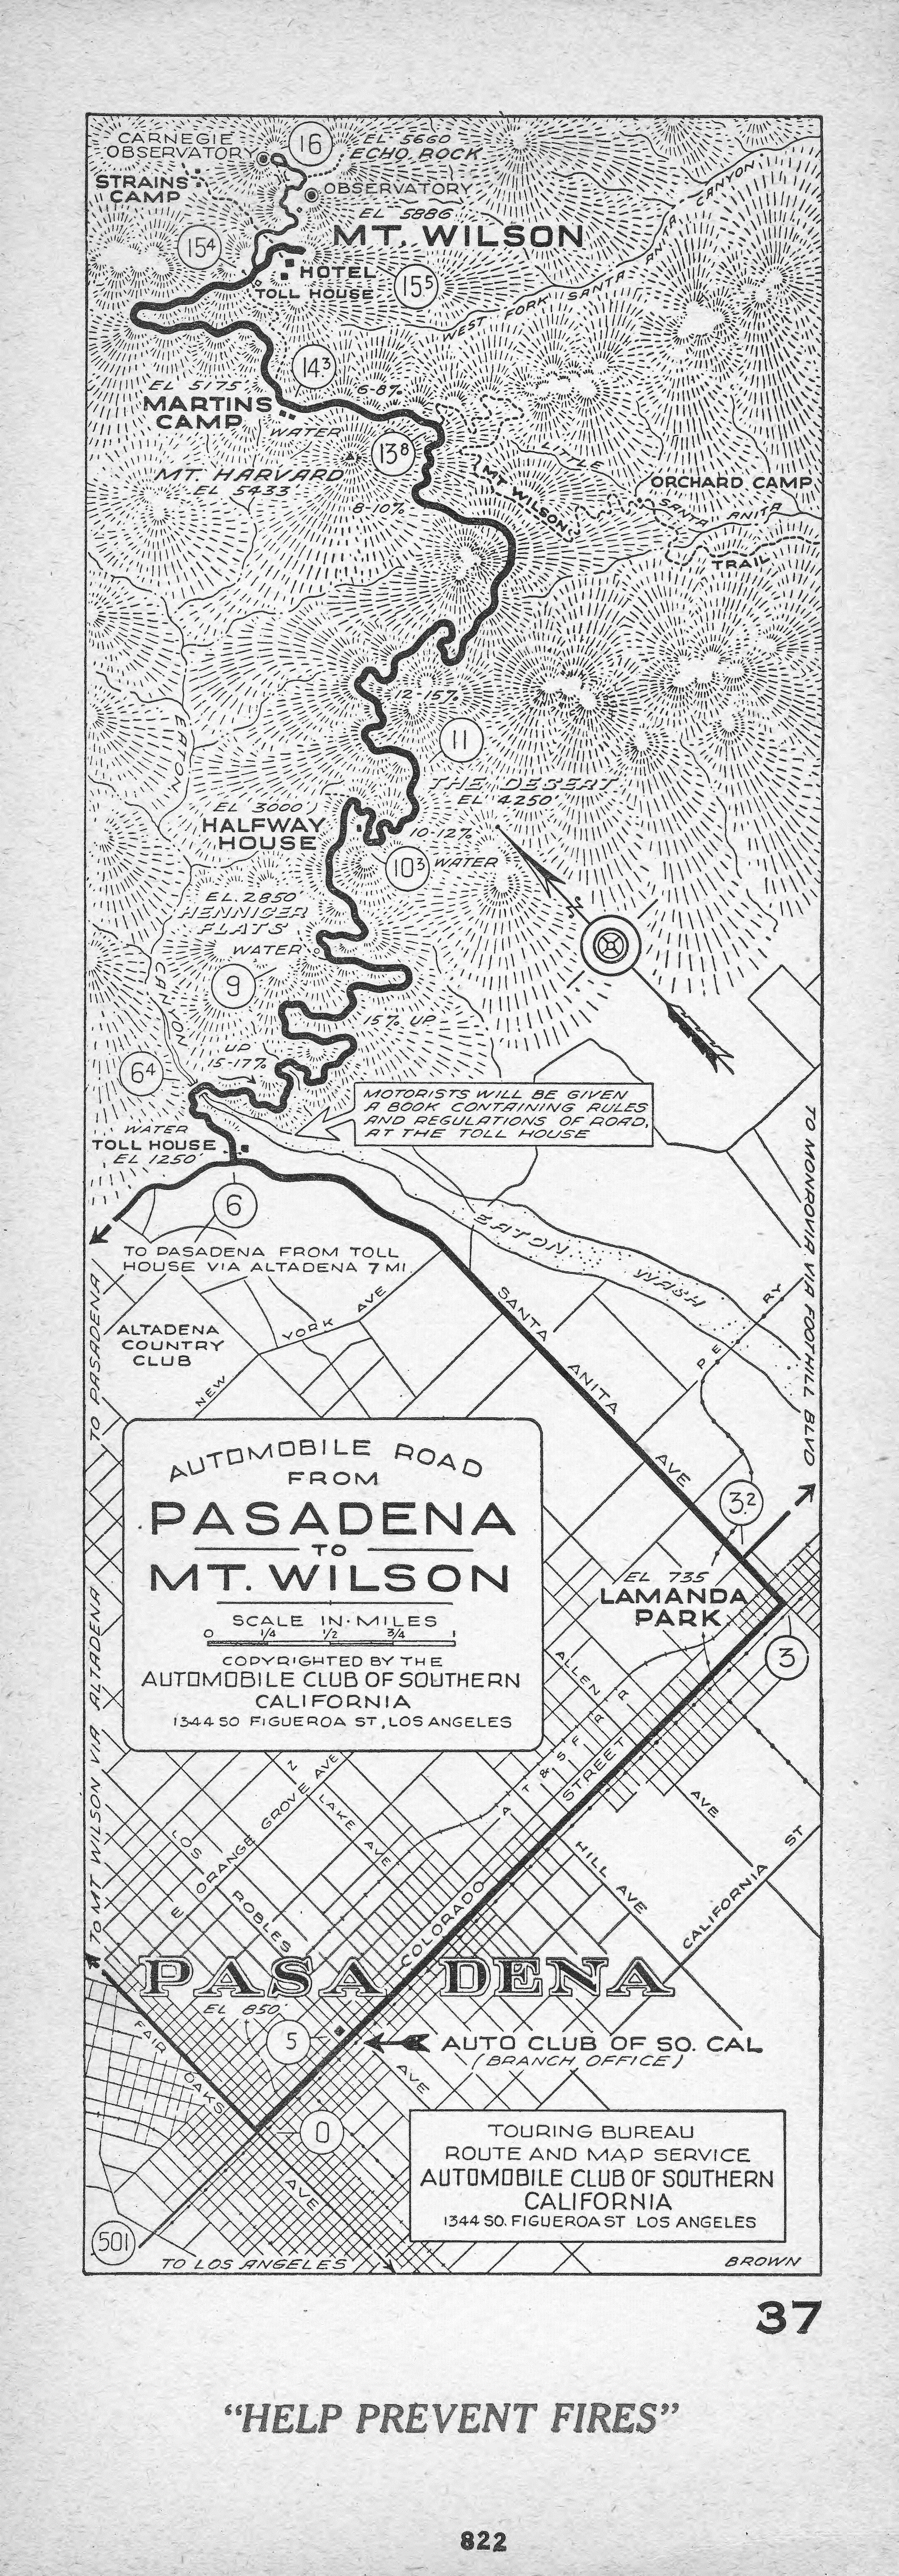 File:Automobile Road From Pasadena To Mount Wilson, 1922 (AAA SM